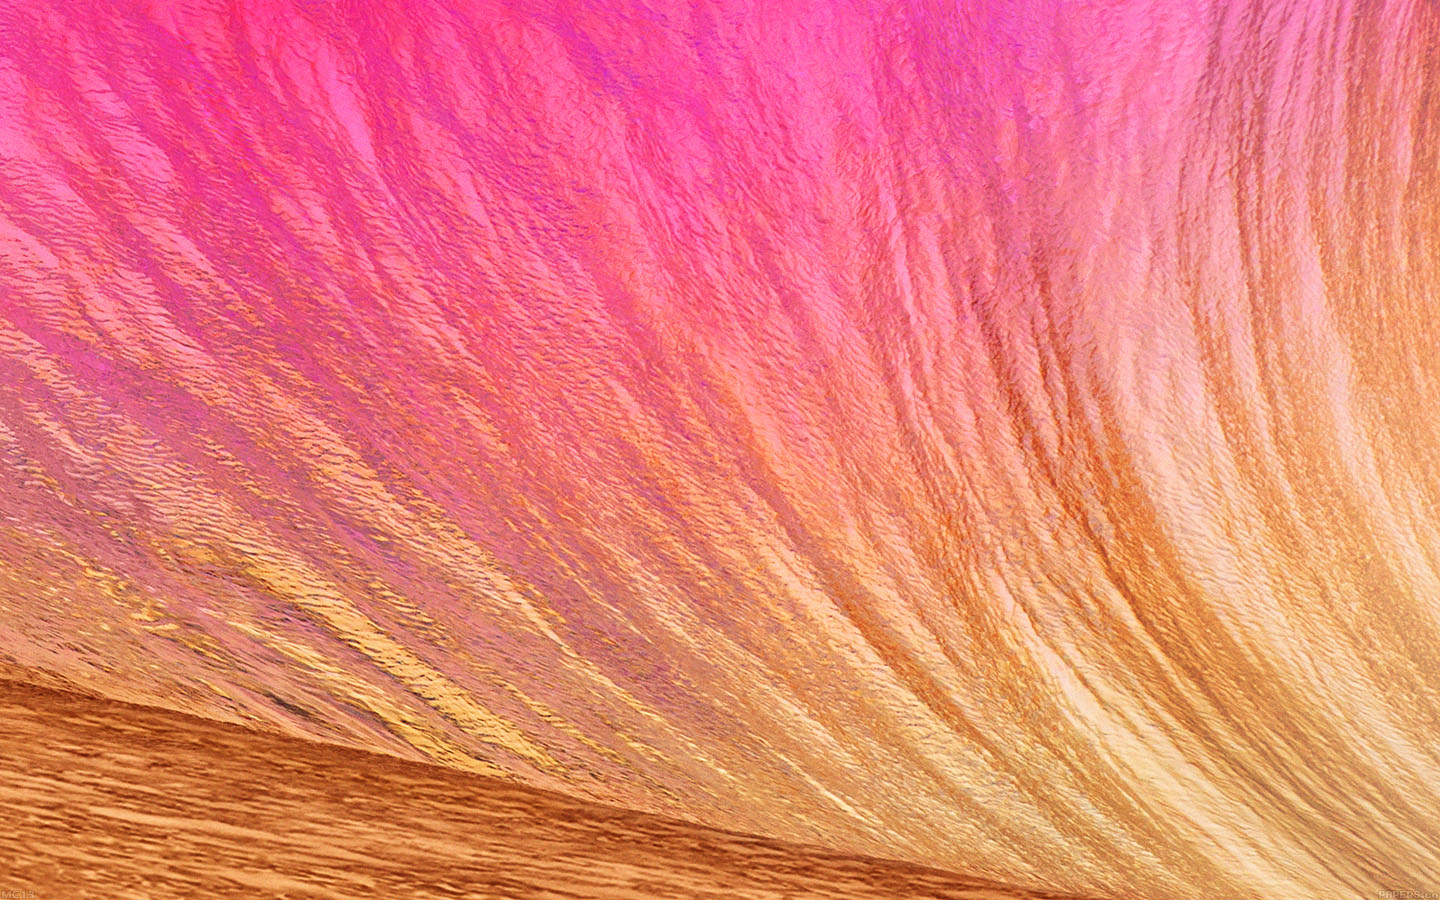 Cute Pink Wallpapers Hd Mc13 Wallpaper Gold Wave Apple Sea Papers Co